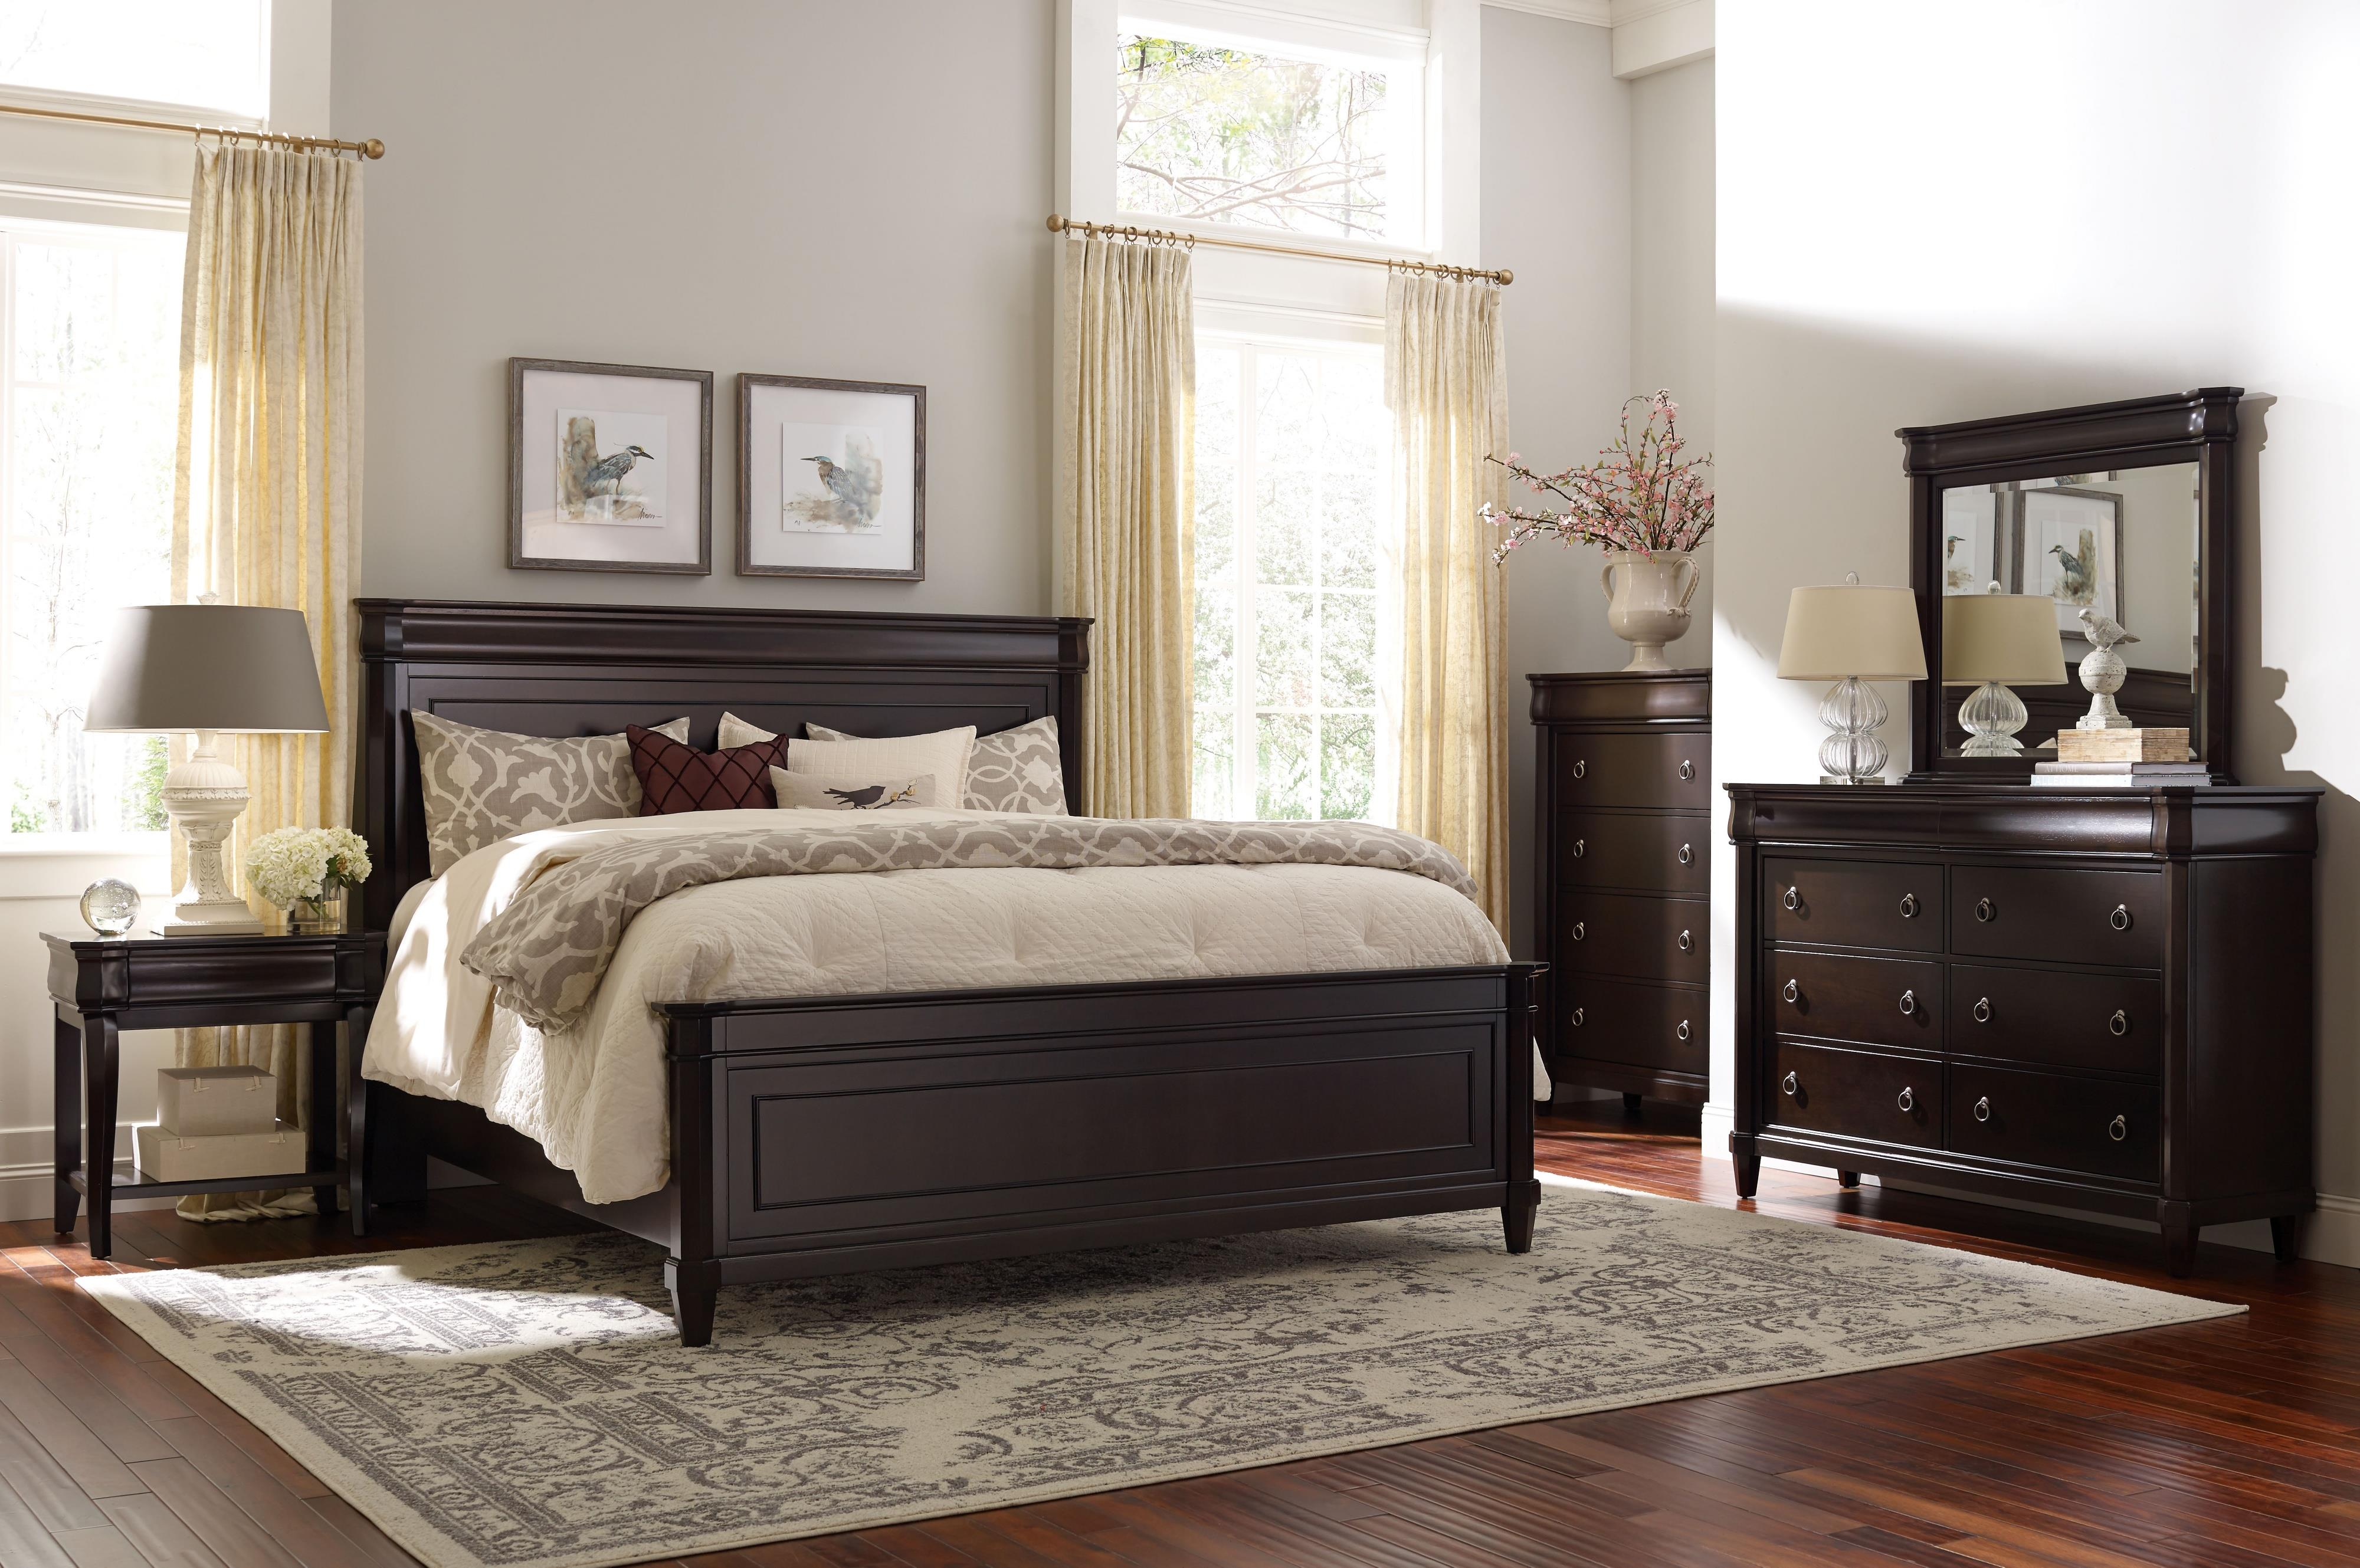 Broyhill Furniture Aryell King Bedroom Group - Item Number: 4907 K Bedroom Group 3